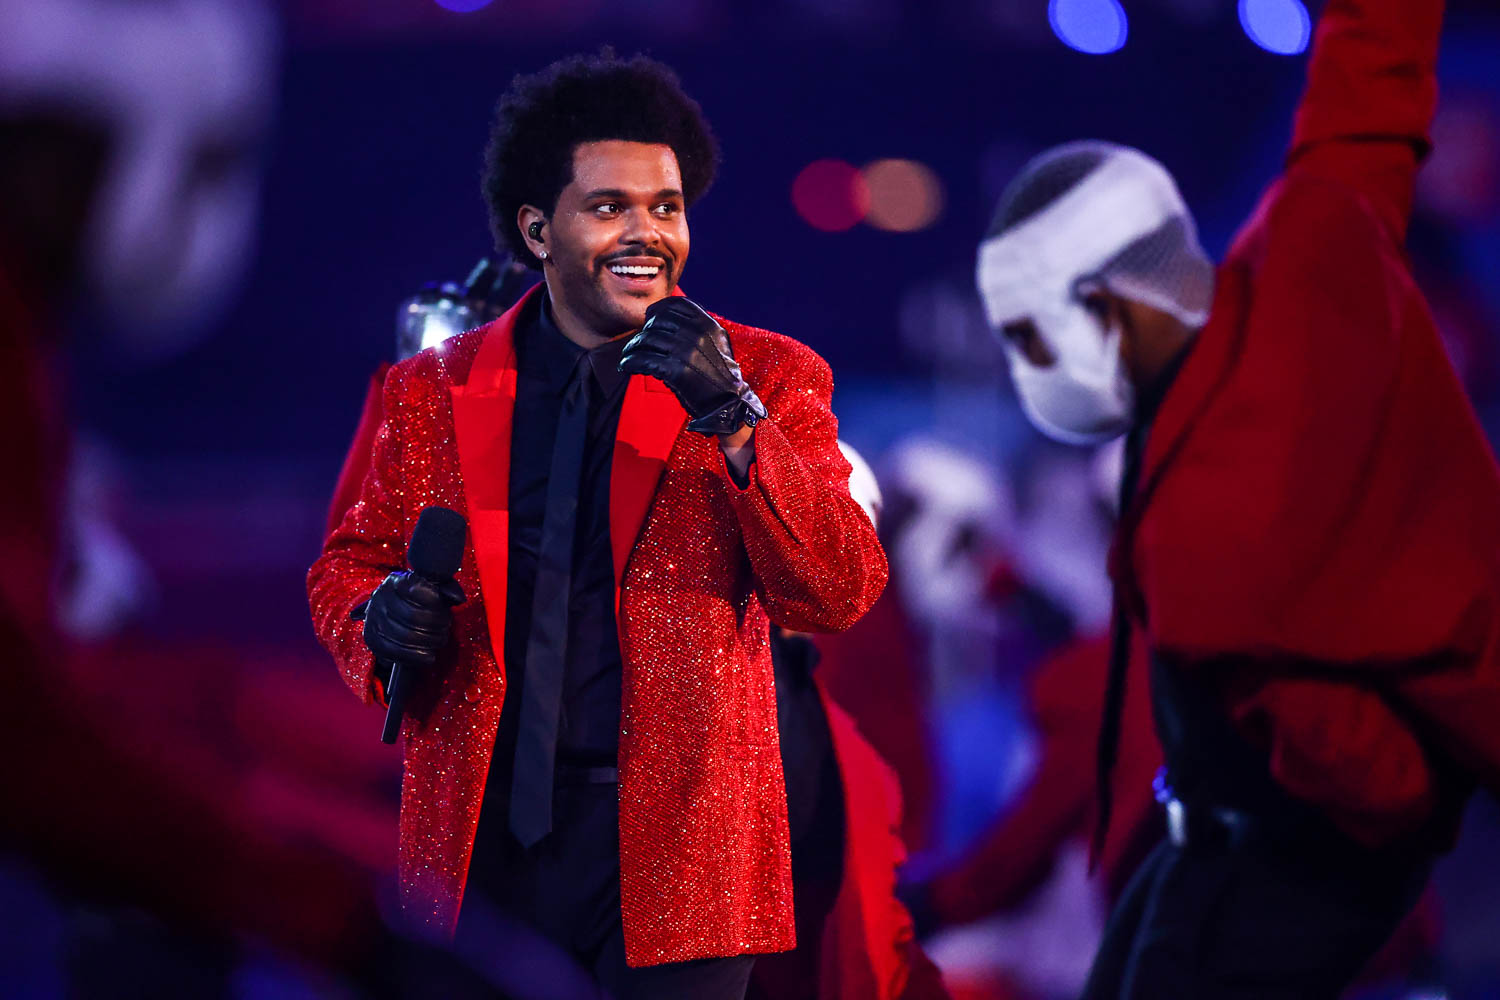 The Weeknd performing during the Pepsi Super Bowl LV Halftime Show, Sunday, Feb. 7, 2021 in Tampa.